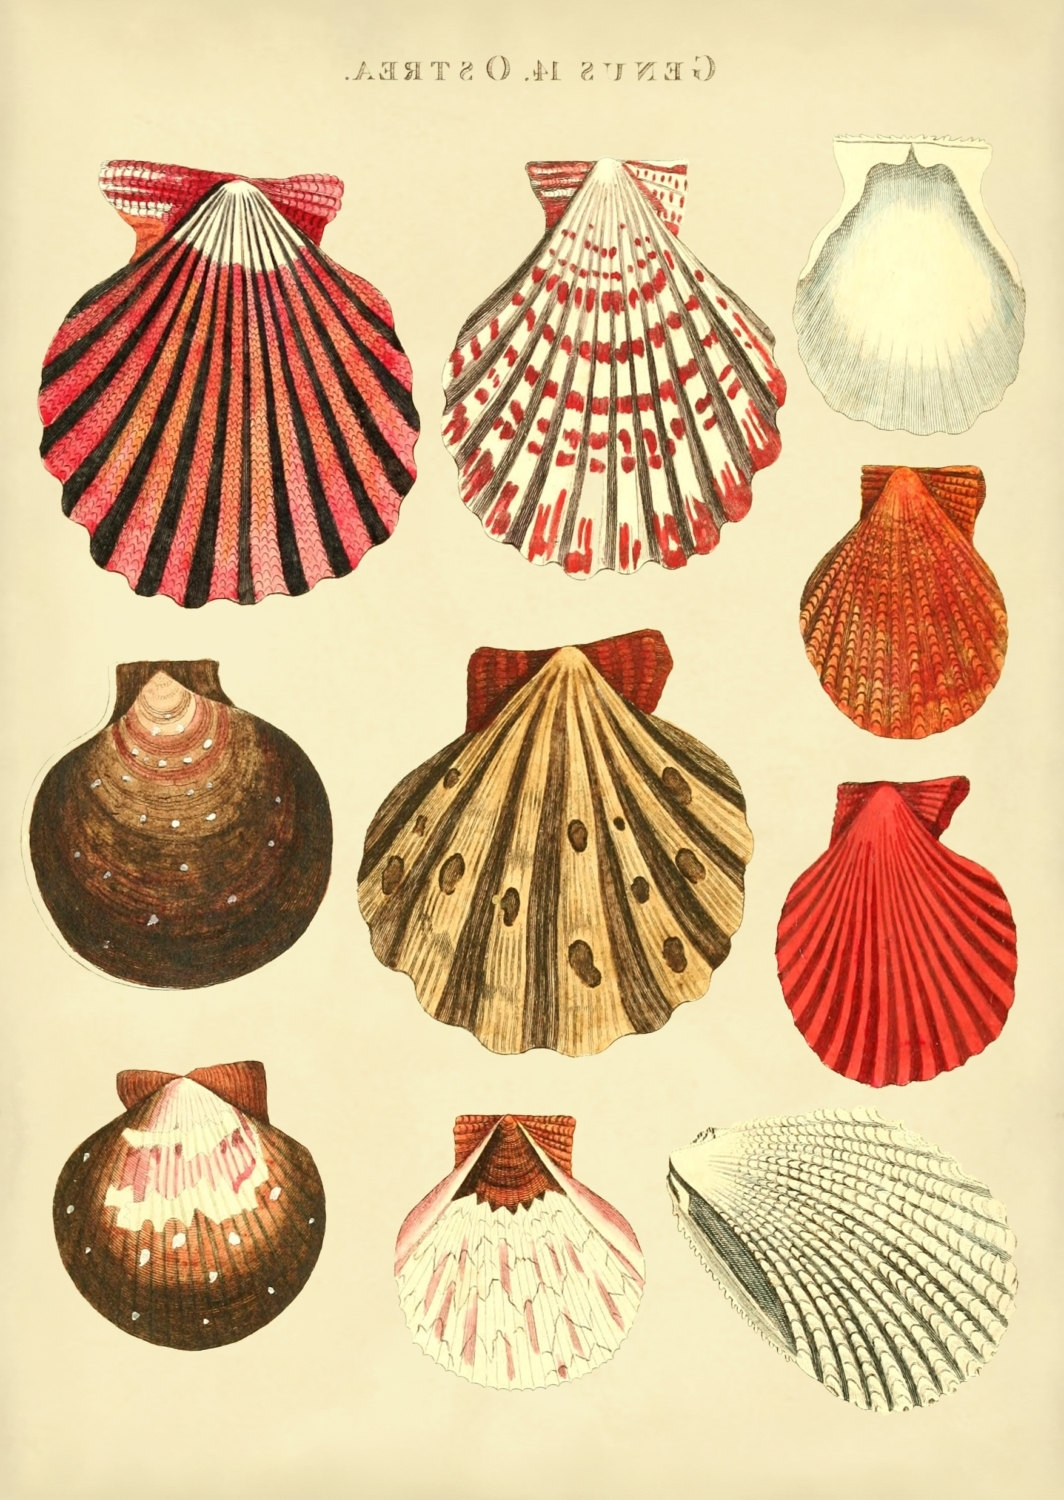 Well Known Seashell Prints Wall Art With Seashells Print Of Oyster Shells, Poster, Beach House Wall Art (View 14 of 15)